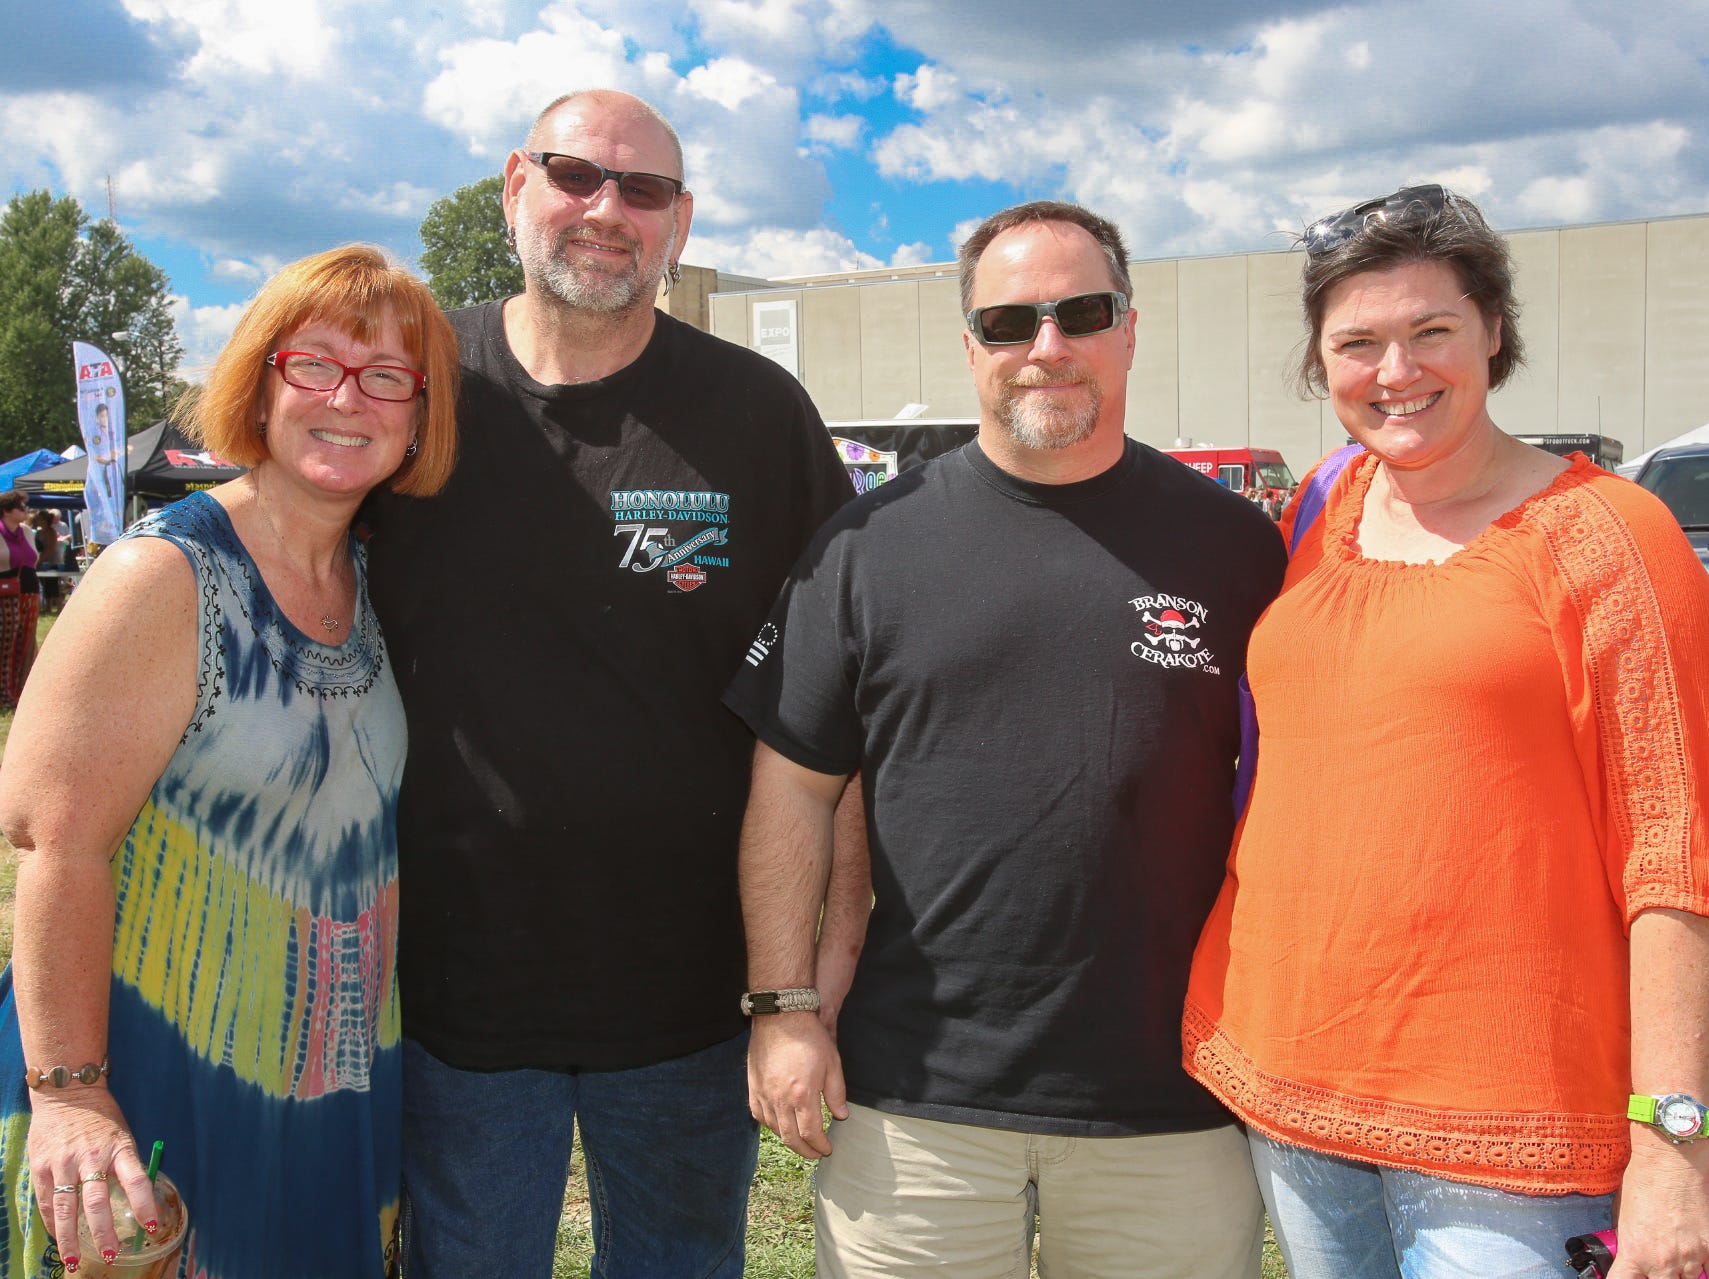 Dana and Jeff Woodworth and John and Laura Siegert